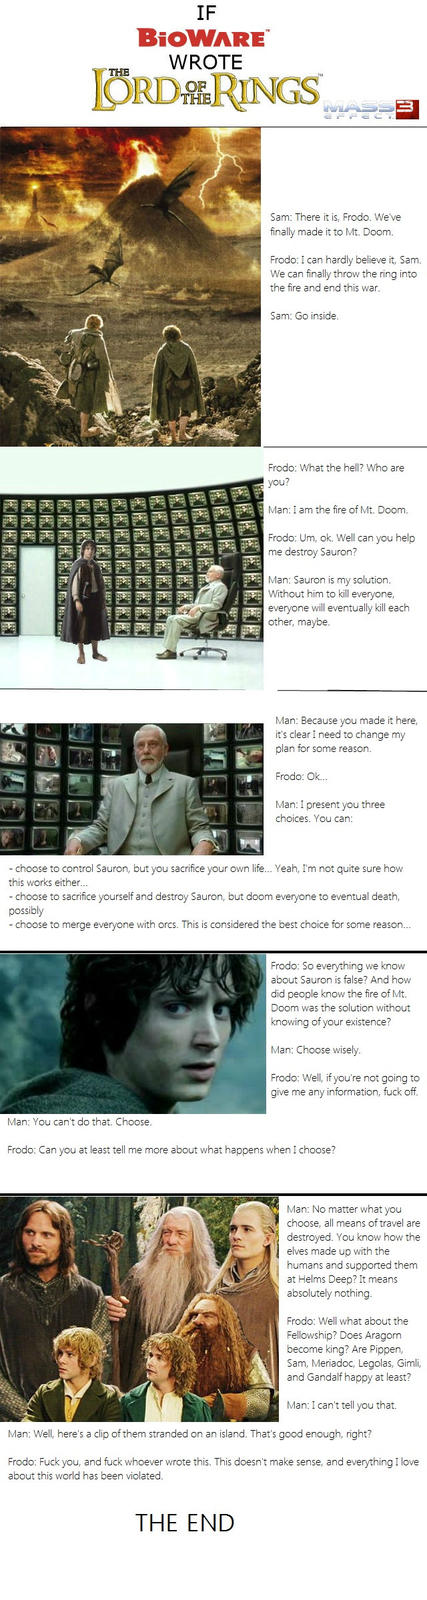 If BioWare Wrote the LOTR Ending...